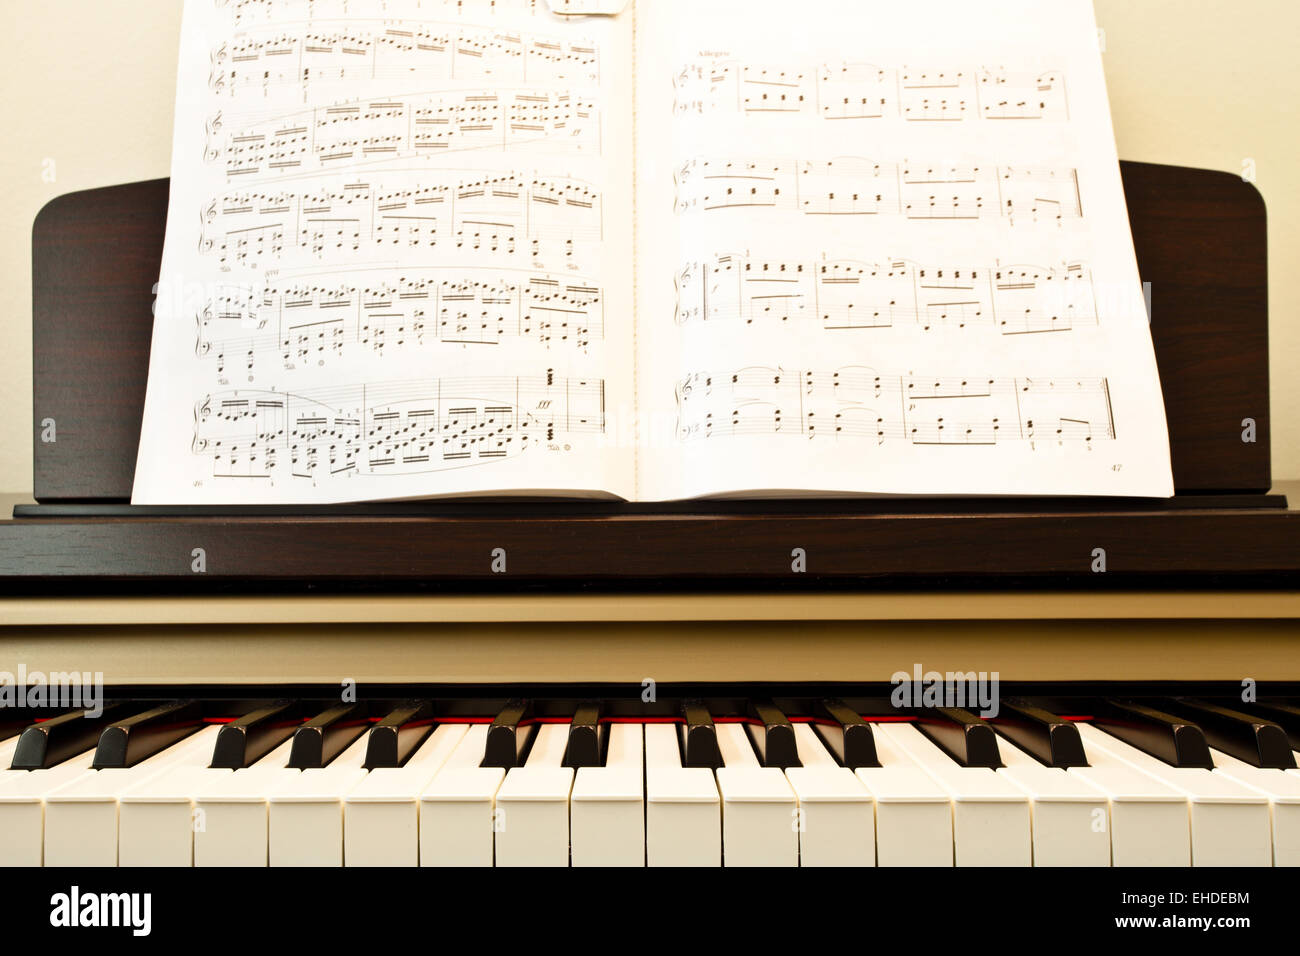 Piano keys and music paper close-up - Stock Image